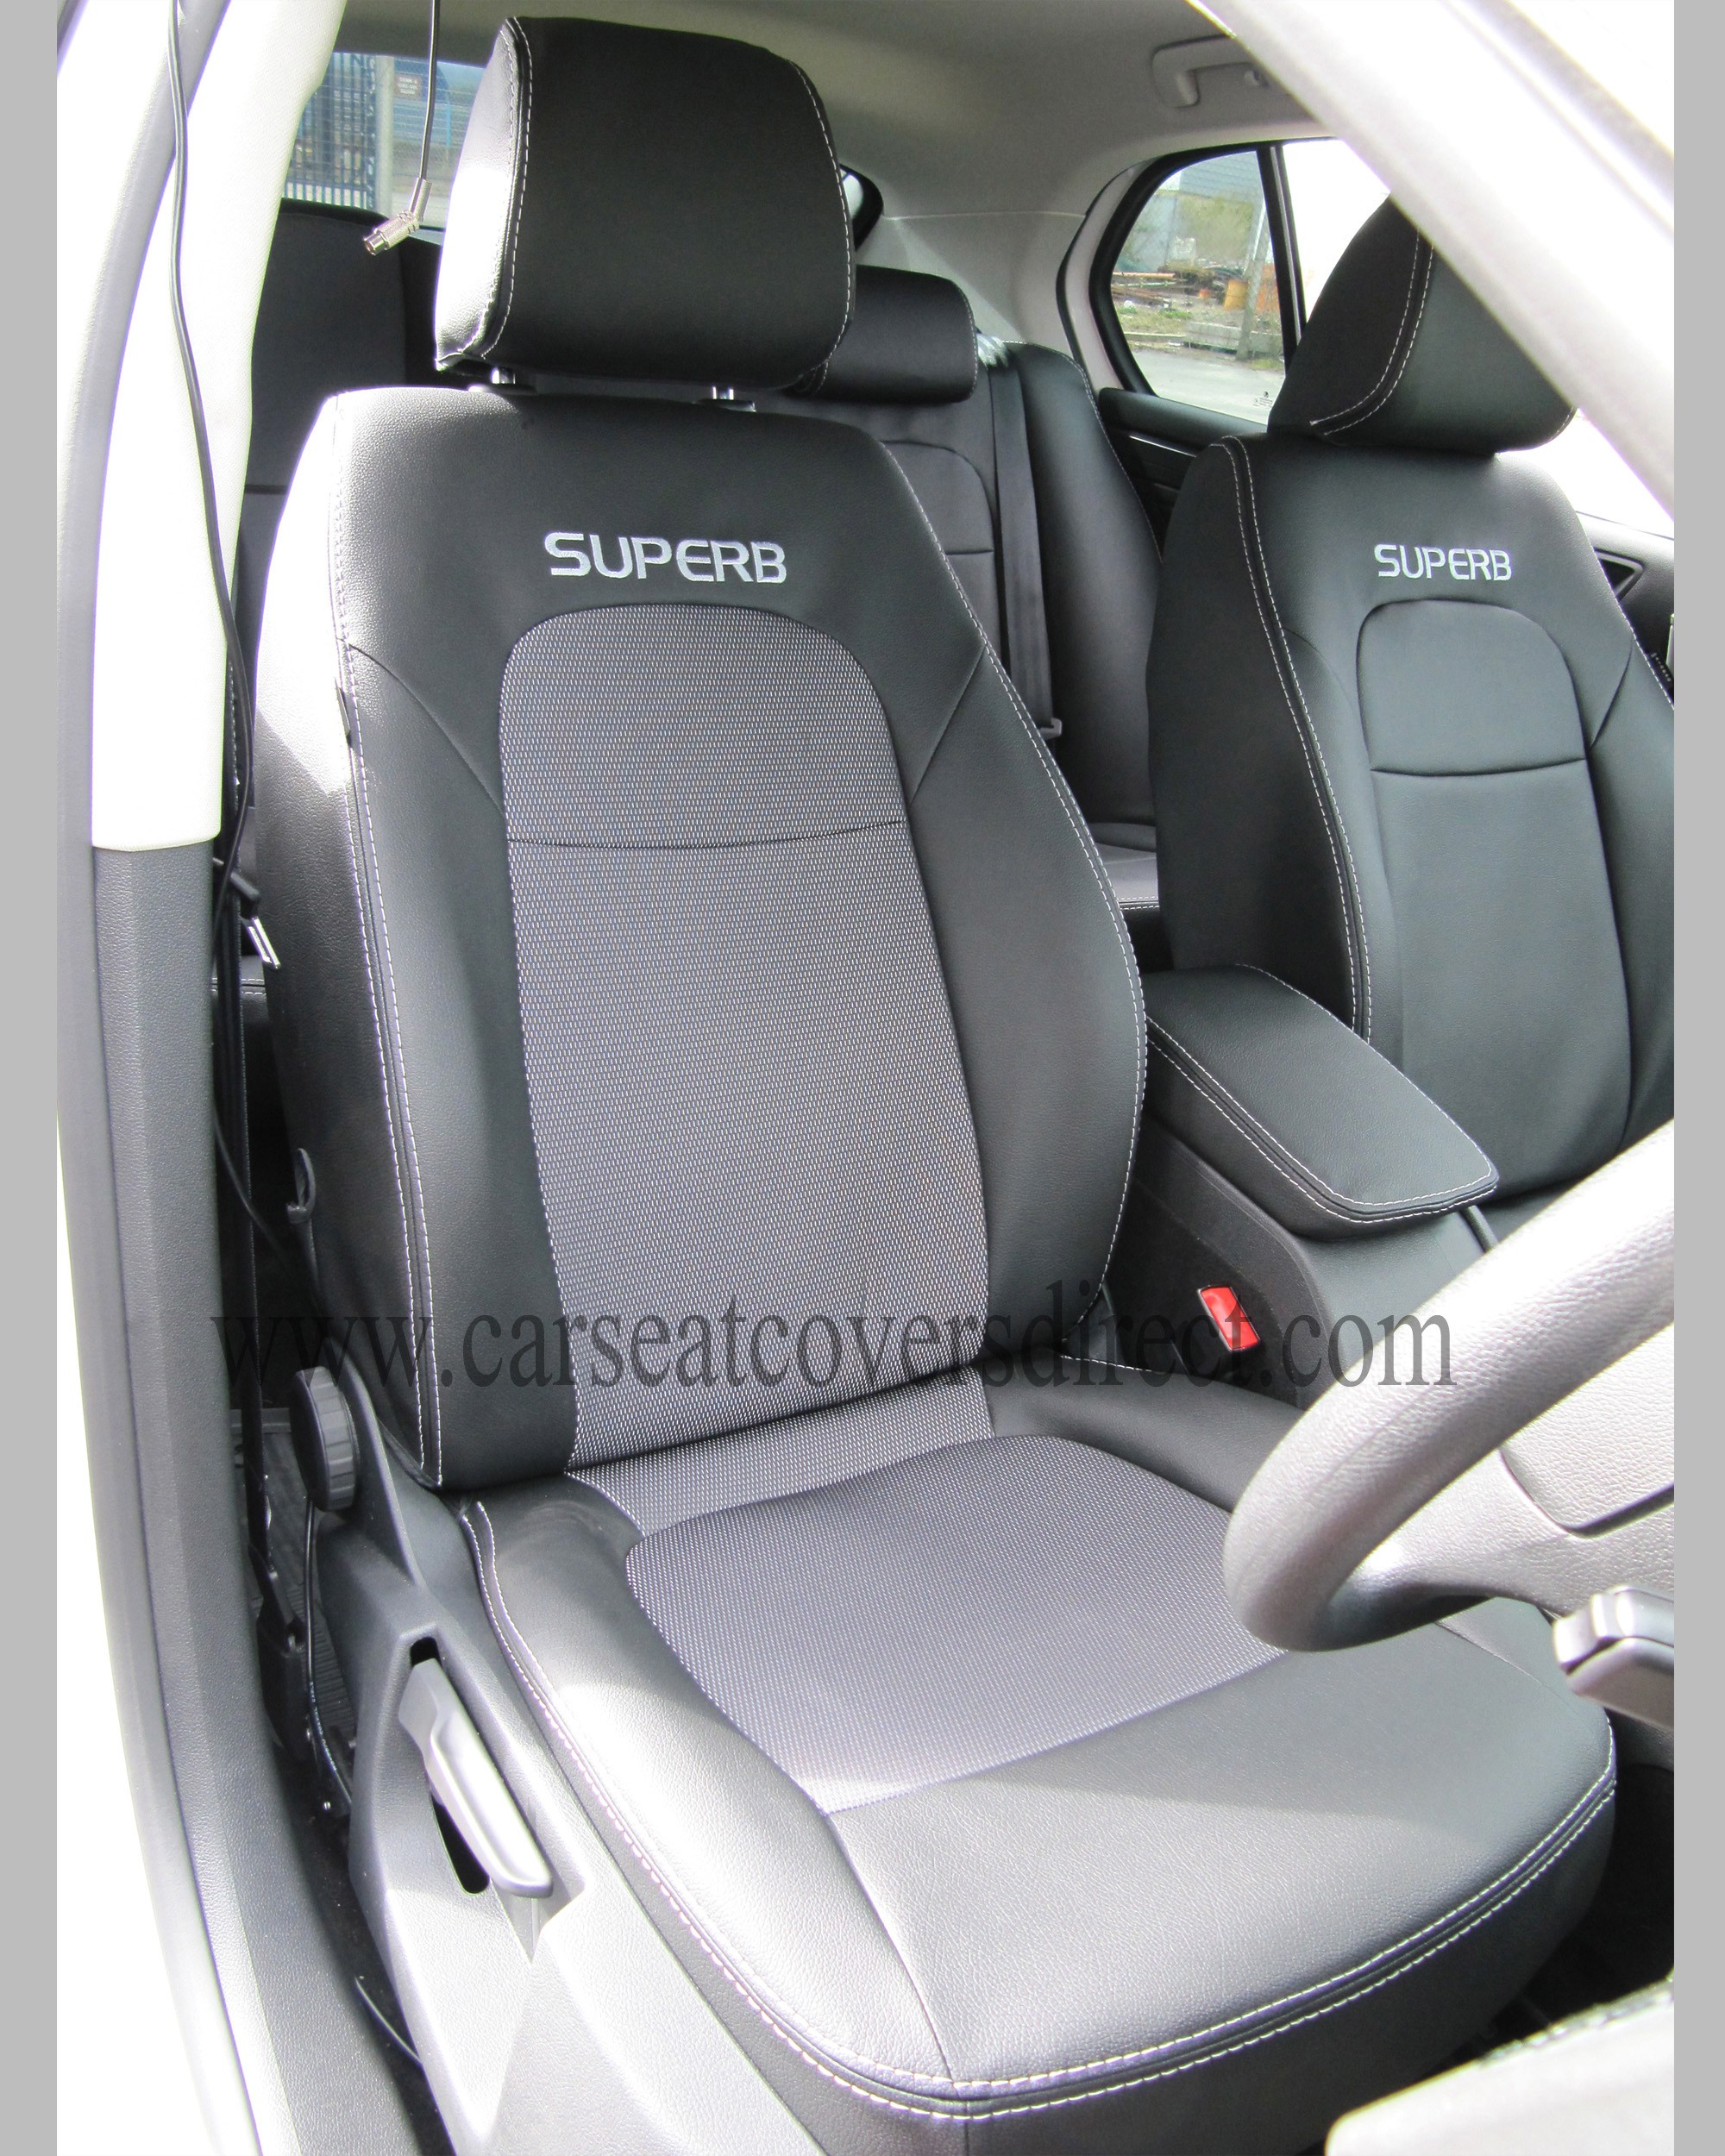 SKODA SUPERB 2ND GEN Taxi Pack Seat Covers